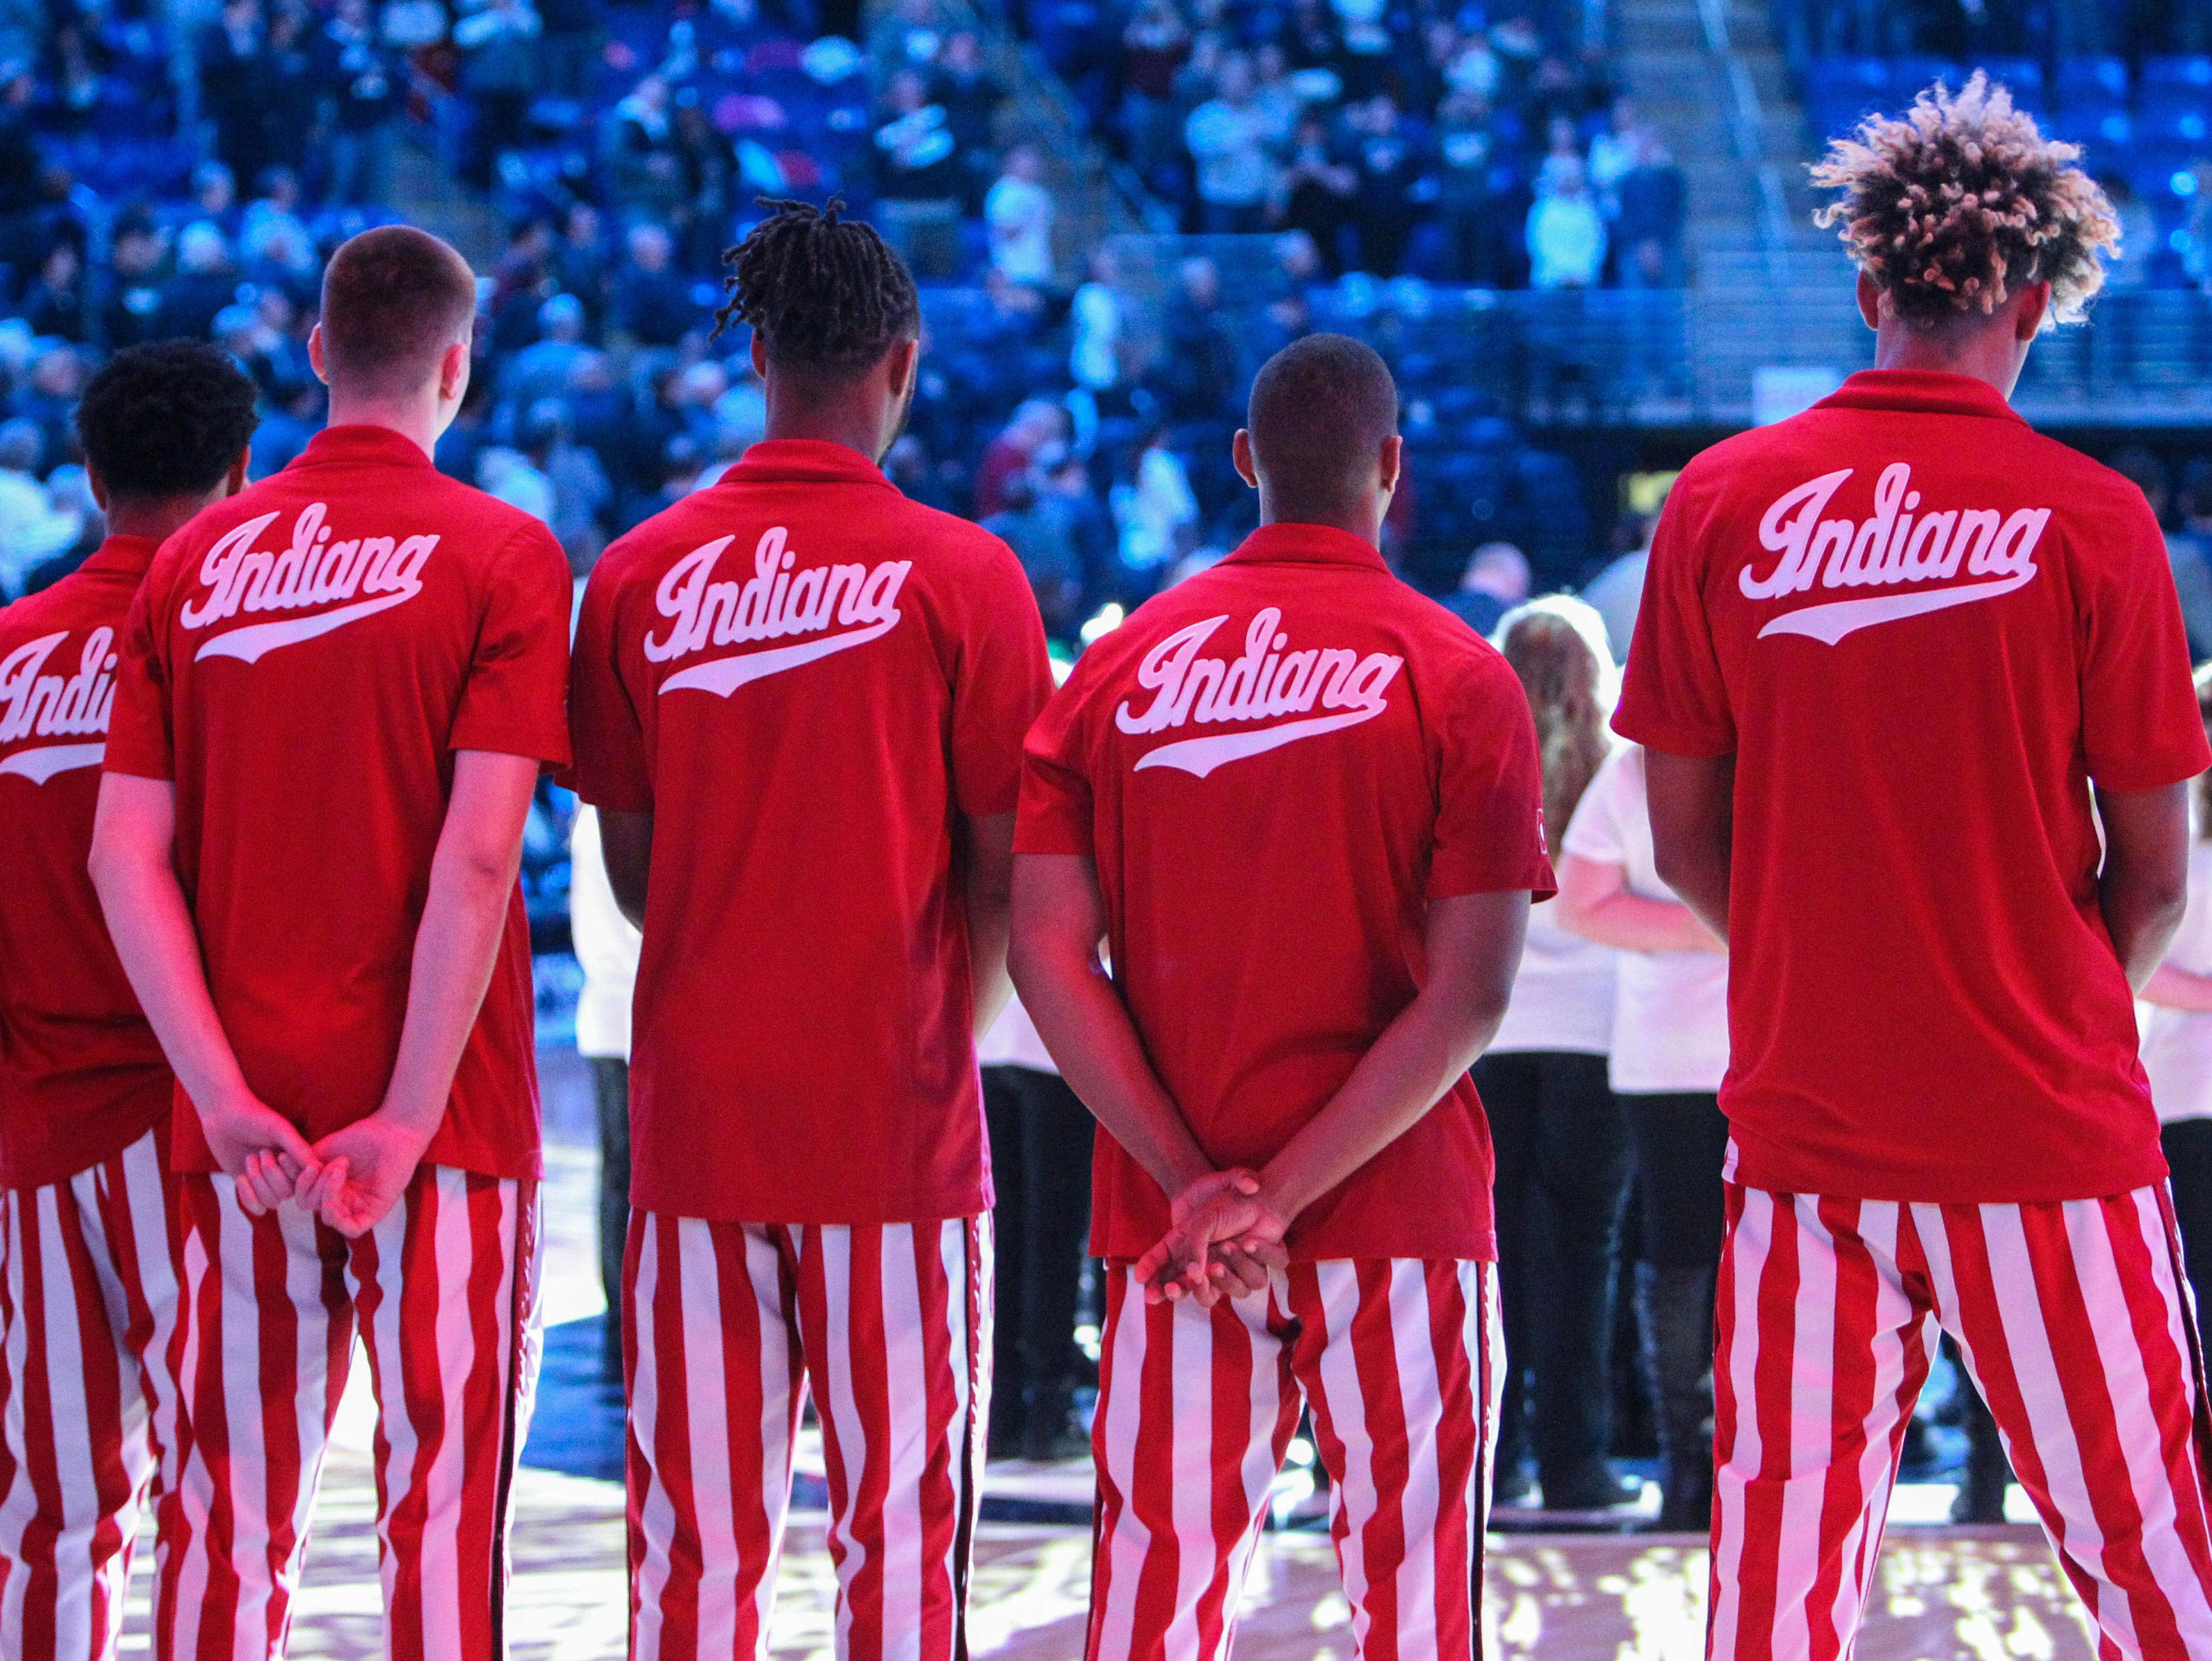 Dec 4, 2018; University Park, PA, USA; Indiana Hoosier players stand prior to the game against the Penn State Nittany Lions at Bryce Jordan Center. Mandatory Credit: Matthew O'Haren-USA TODAY Sports